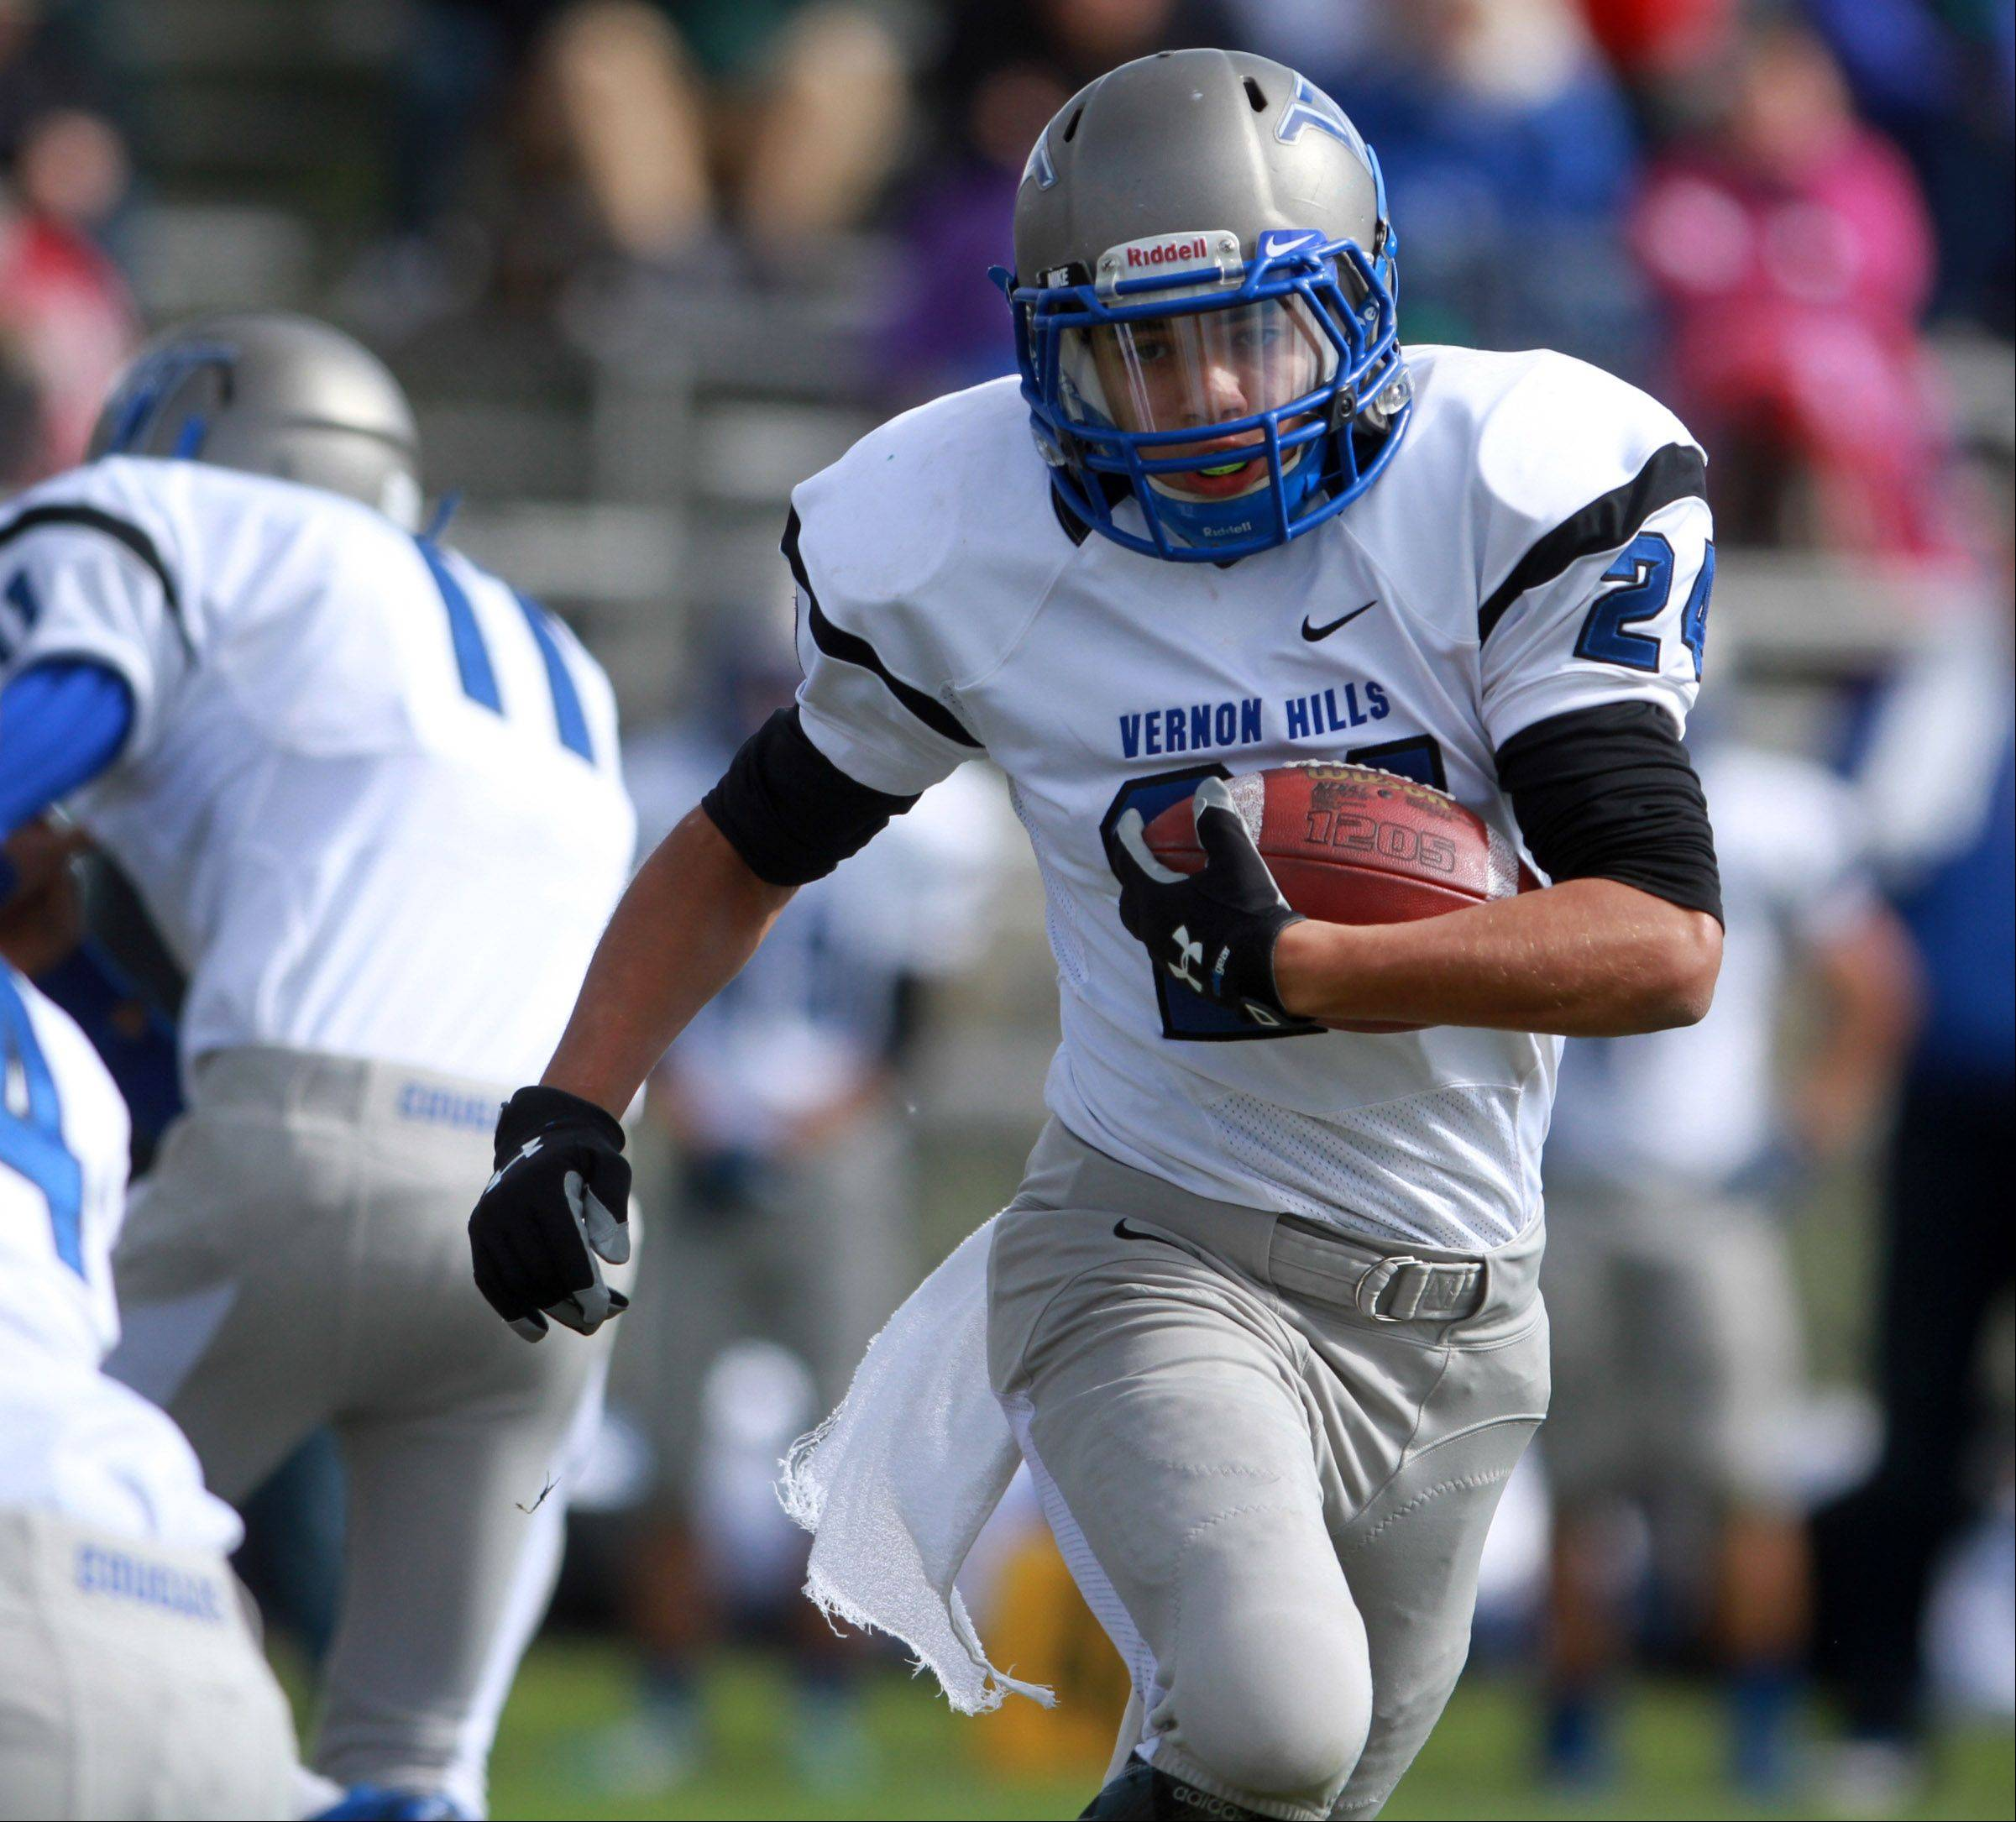 Vernon Hills running back Andres Salazar run up field against Round Lake at Round Lake on Saturday, October 19.